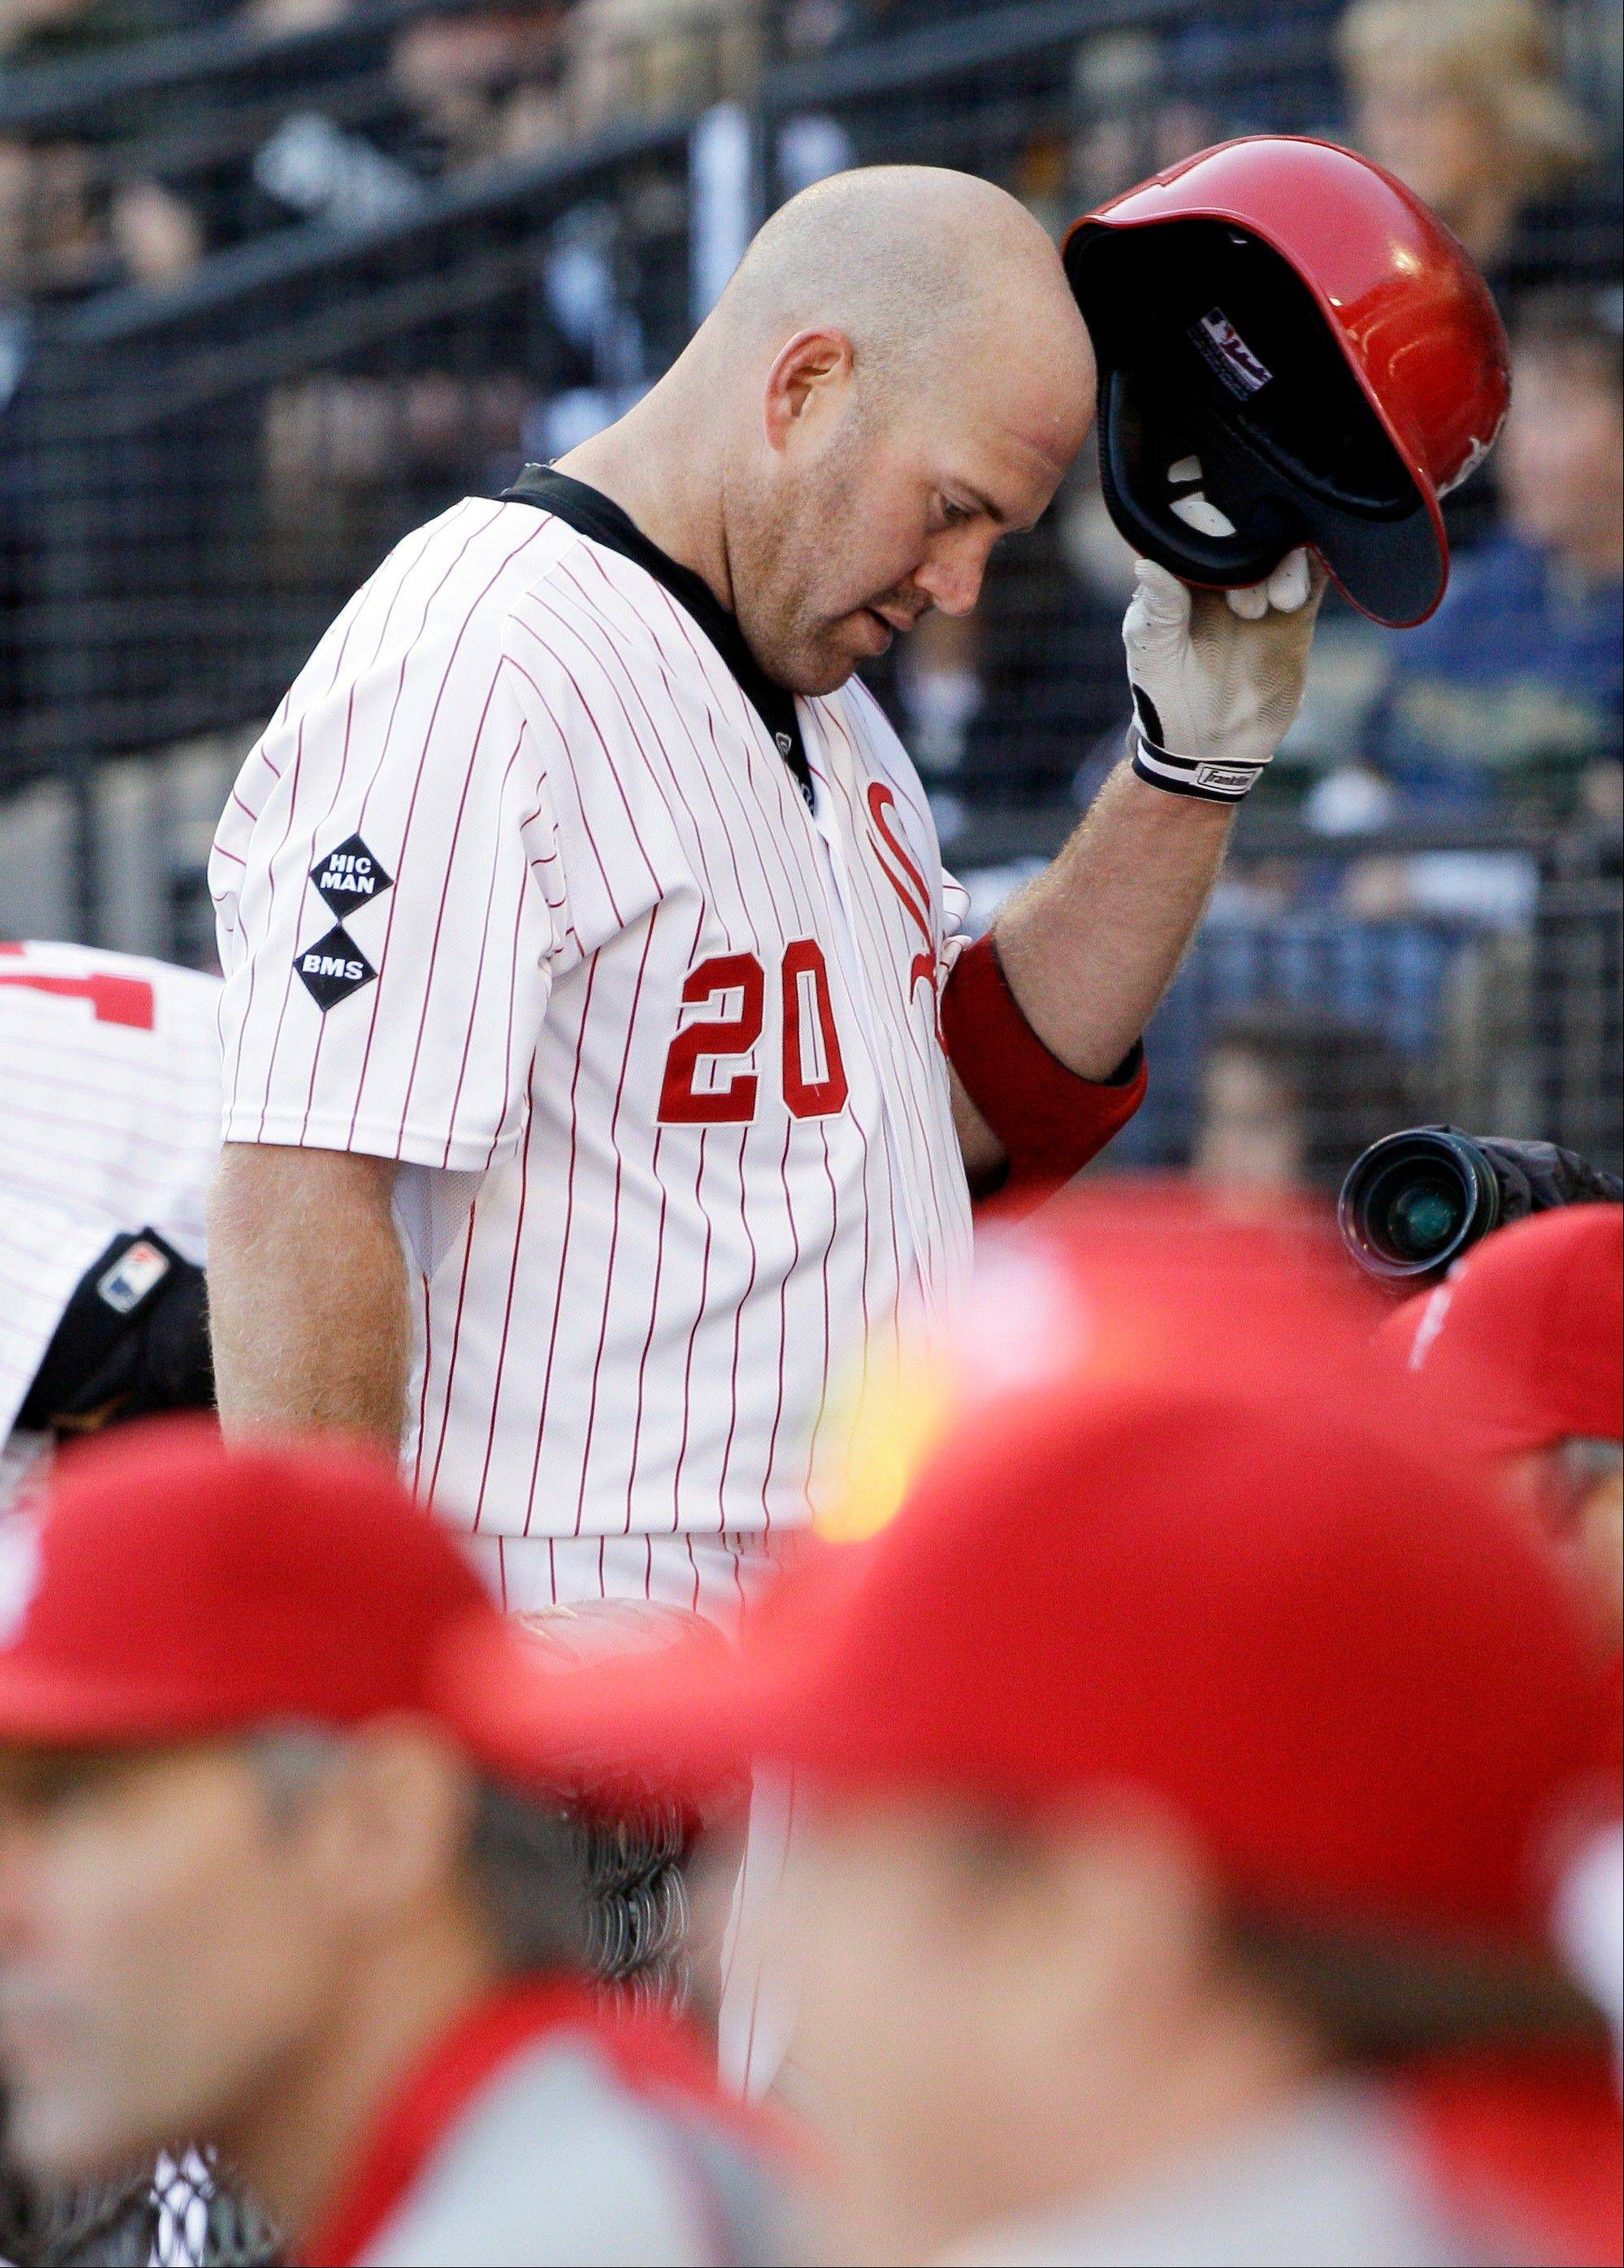 Kevin Youkilis looks down as he walks back to the dugout after striking out in the eighth inning Sunday at U.S. Cellular Field.